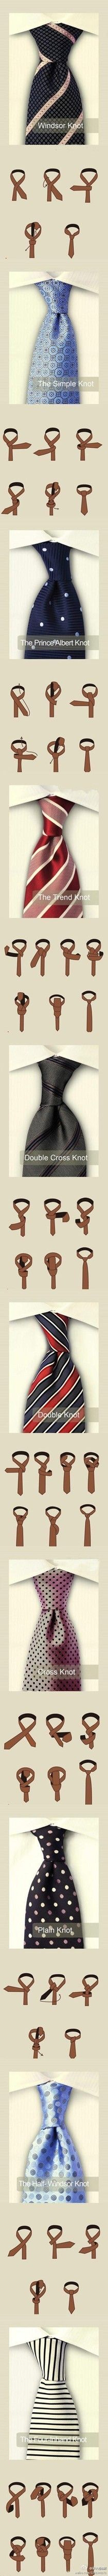 the knot, oneday, remember this, tying ties, tie a tie